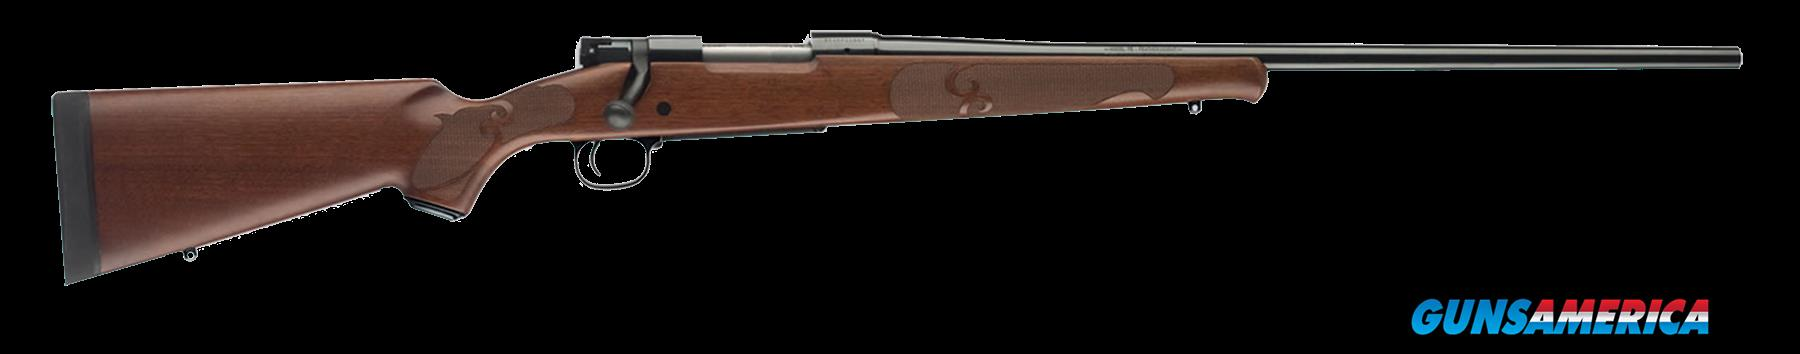 "Winchester Guns 535200210 70 Featherweight Bolt 22-250 Rem 22"" 5+1 Grade I Walnut Stk Blued  Guns > Rifles > W Misc Rifles"